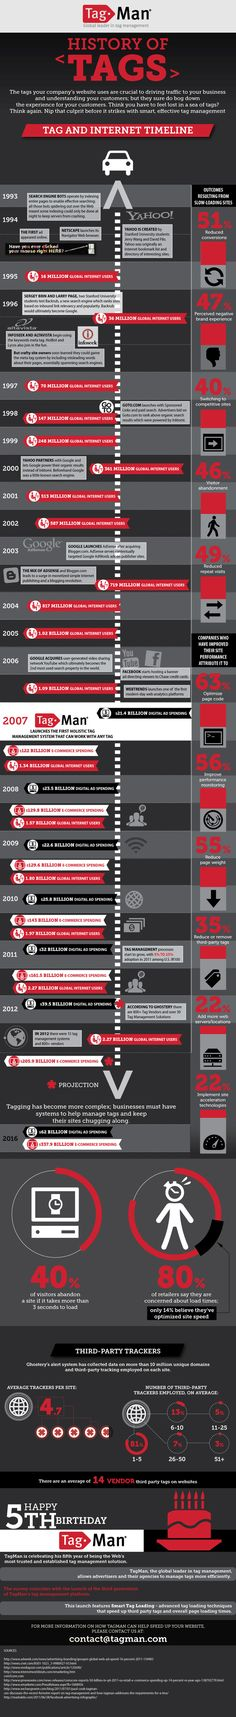 The history of tag management [infographic] | Econsultancy